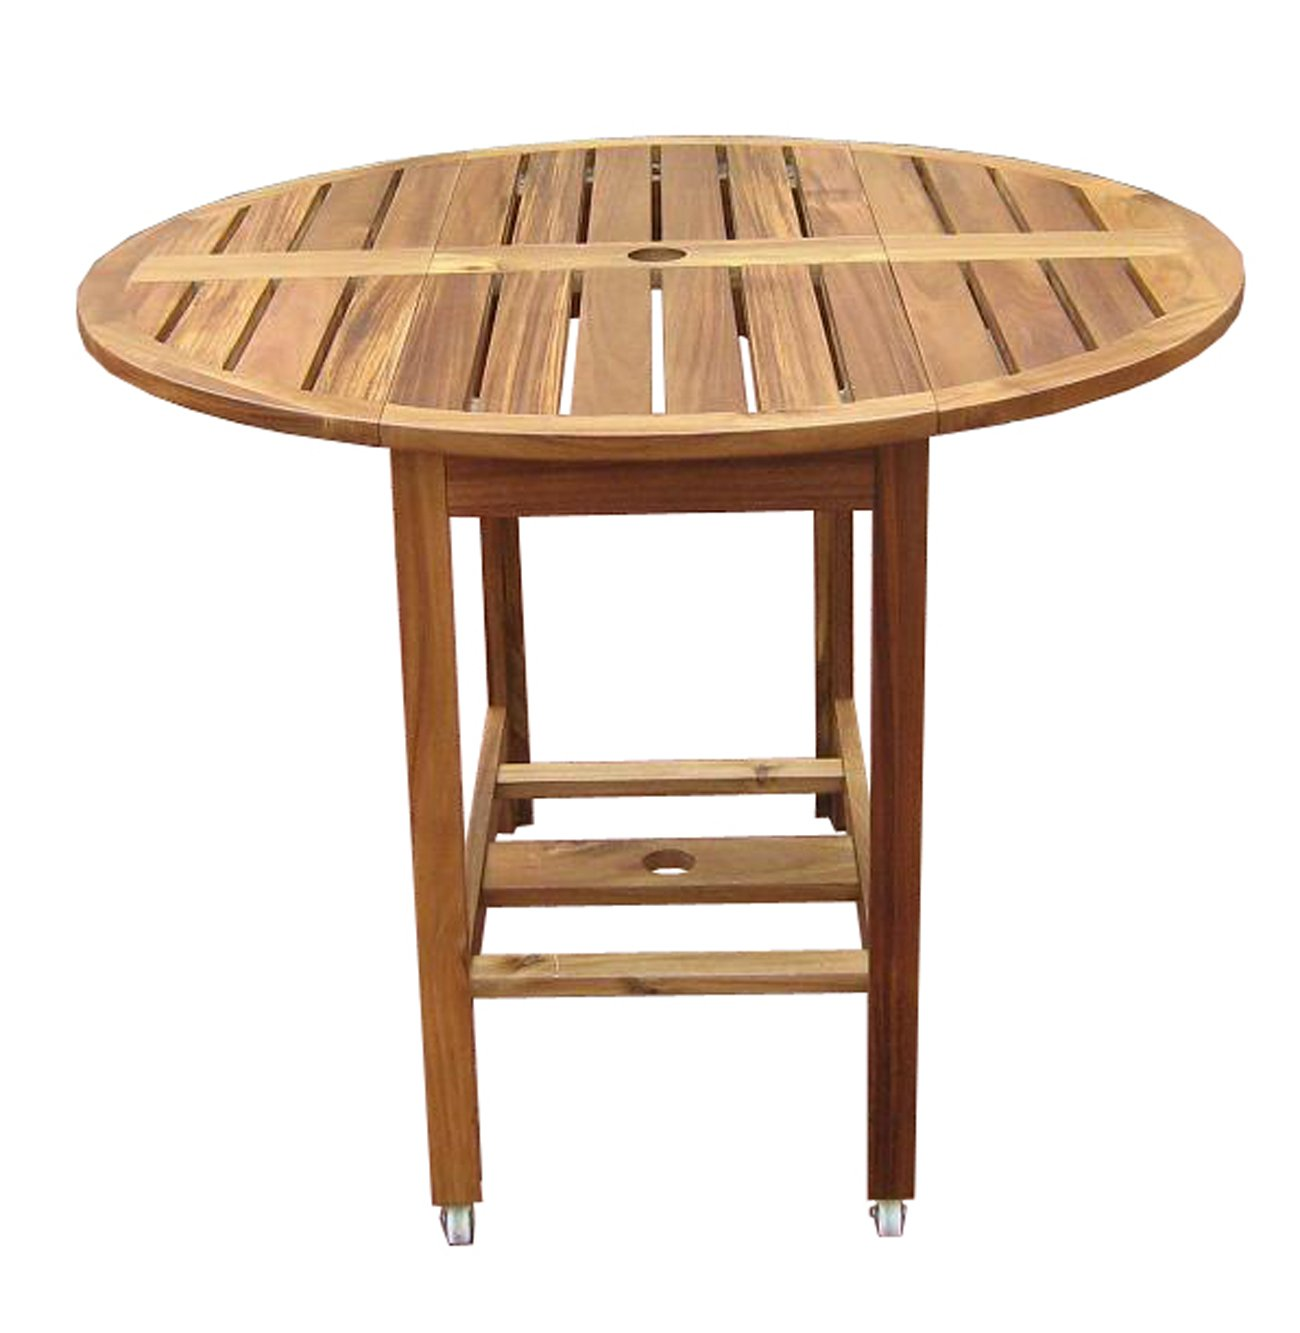 Amazon.com : Merry Garden Acacia Folding Dining Table : Folding Patio Tables  : Garden U0026 Outdoor